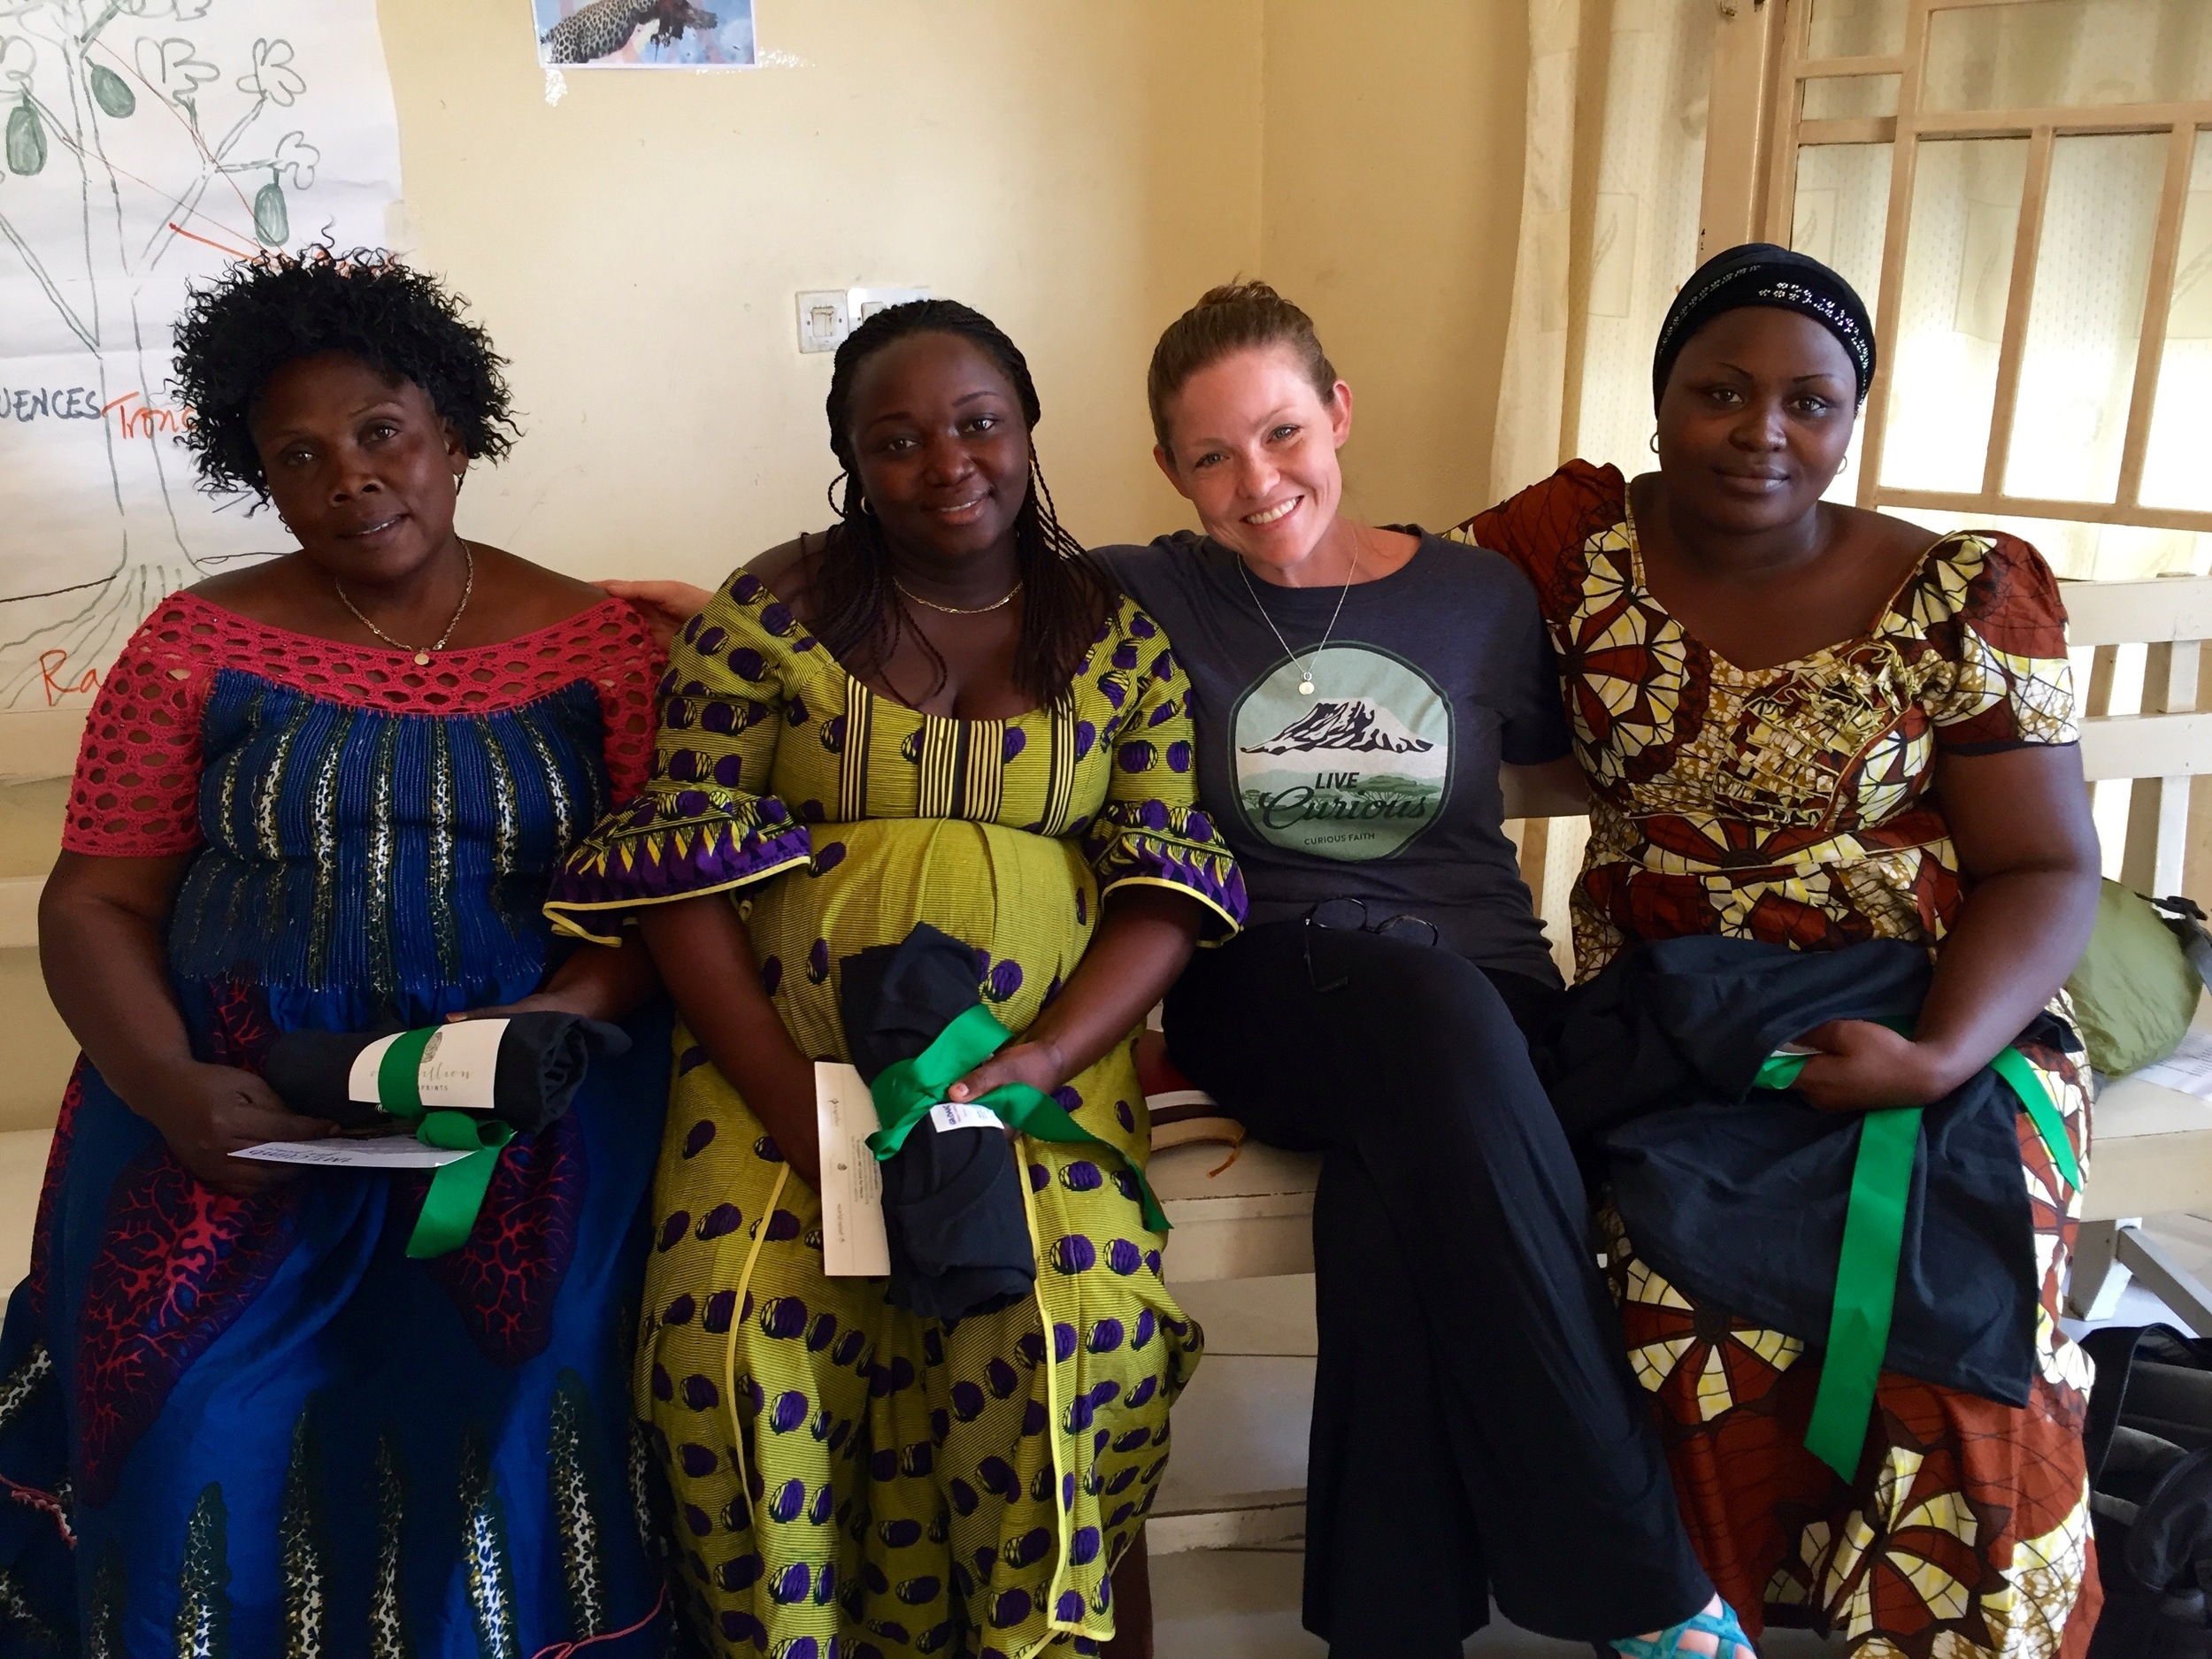 From left to right: Charlene (sexual-based violence group participant and leader), Dr. Esperance (serves patients dealing with HIV/AIDS and women undergoing fistula surgeries), Leia, and Alice (World Relief staff member).